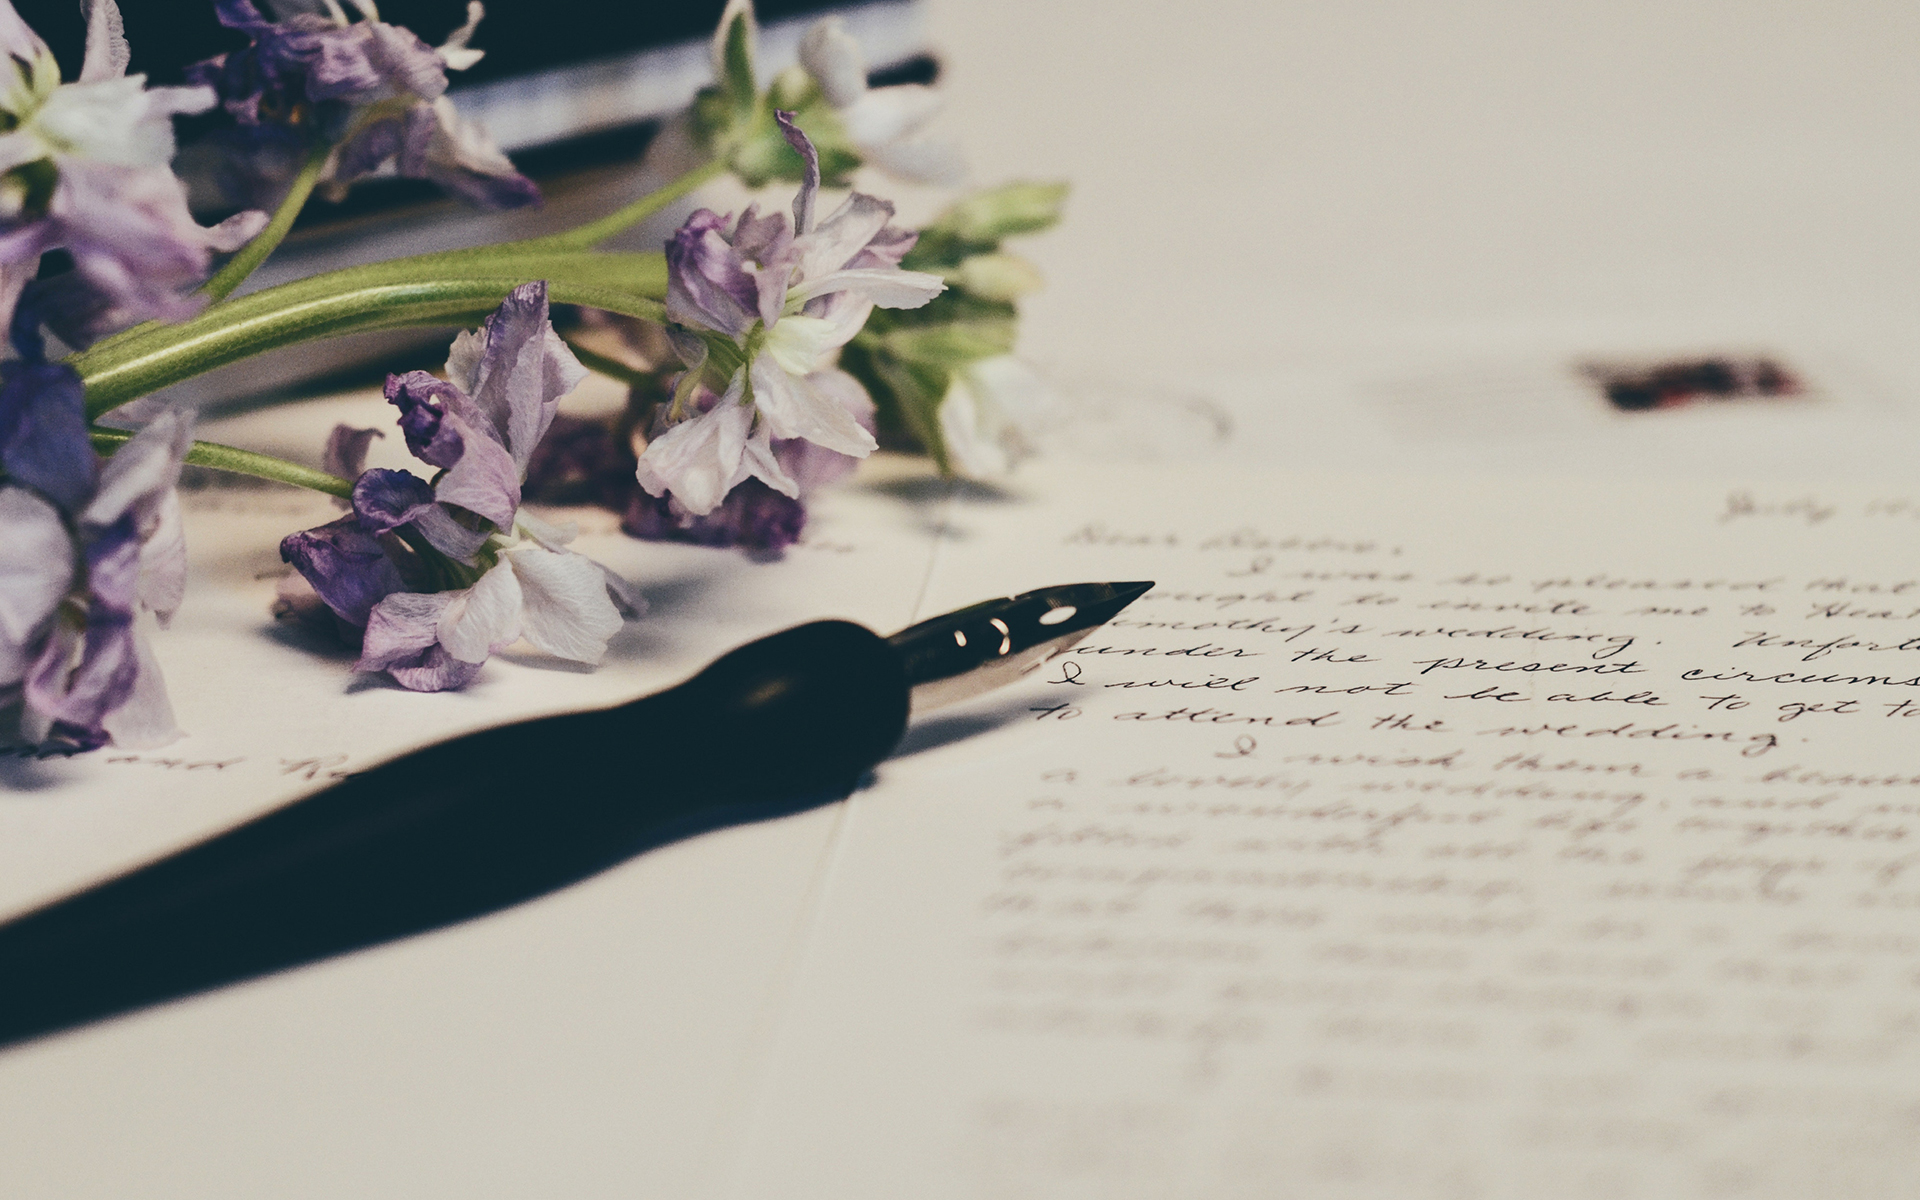 calligraphy pen and paper beside flowers